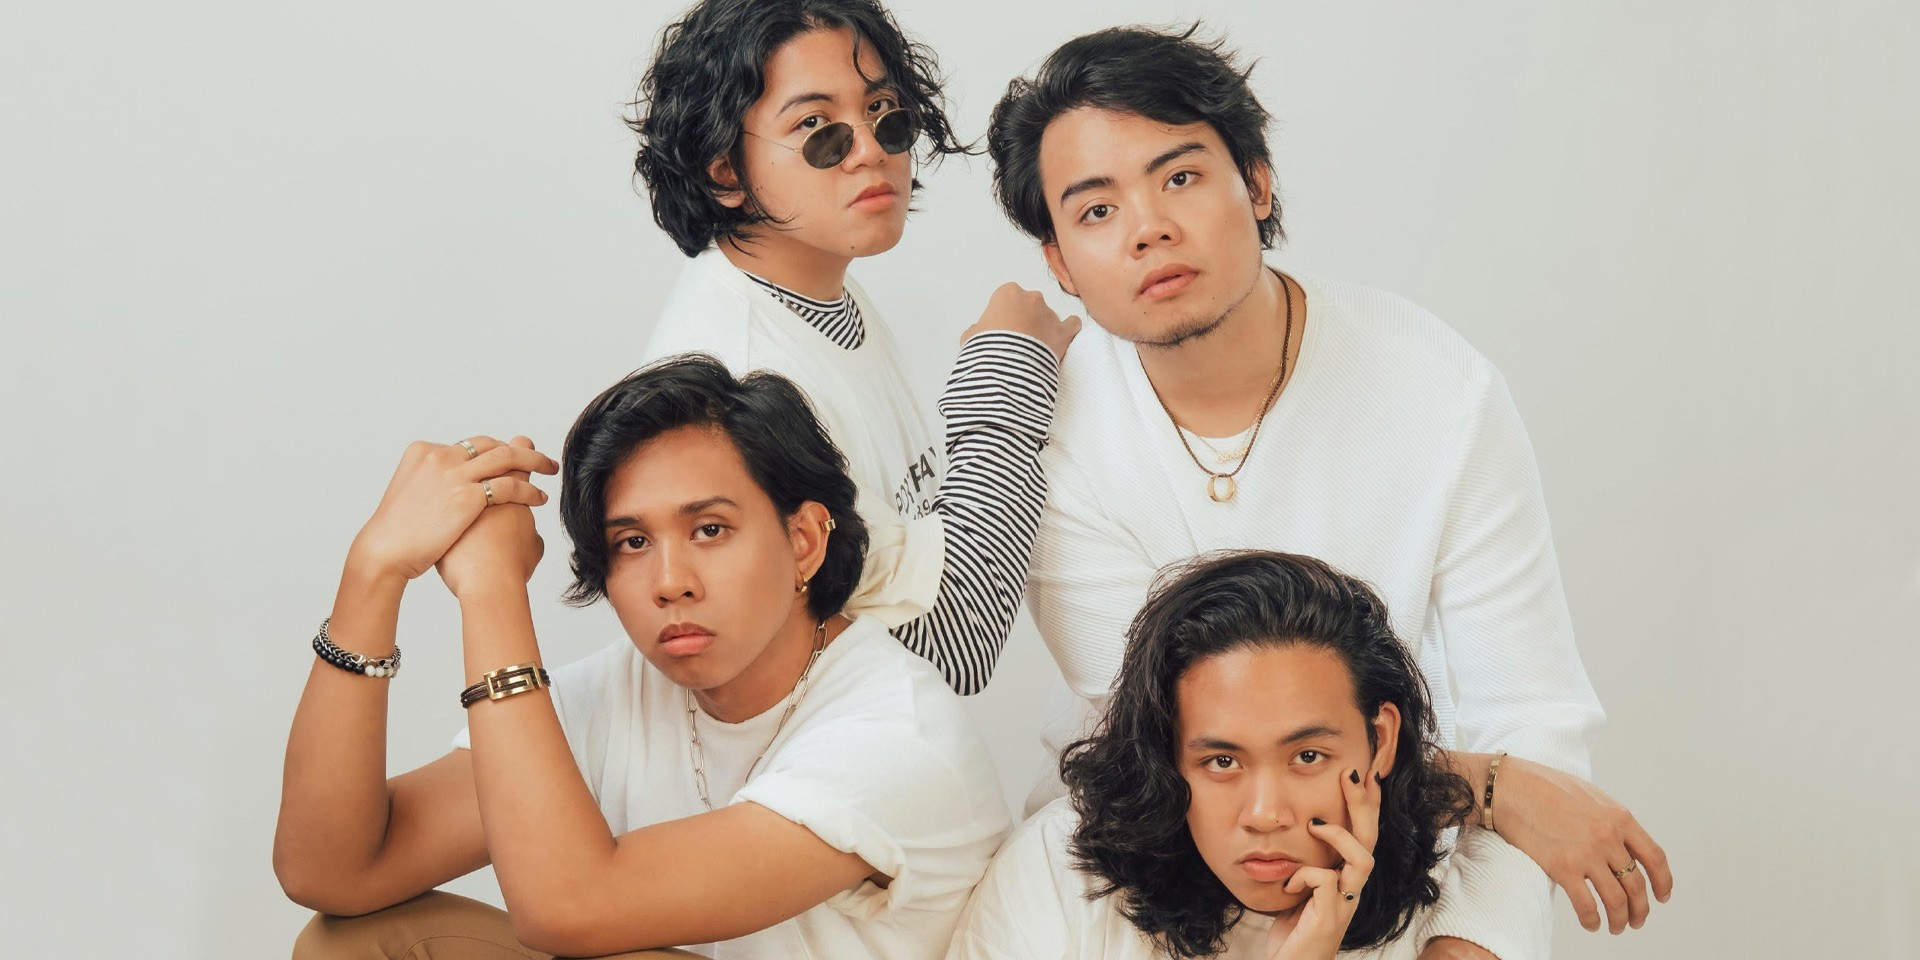 One Click Straight share first Tagalog EP Harana Coma — listen